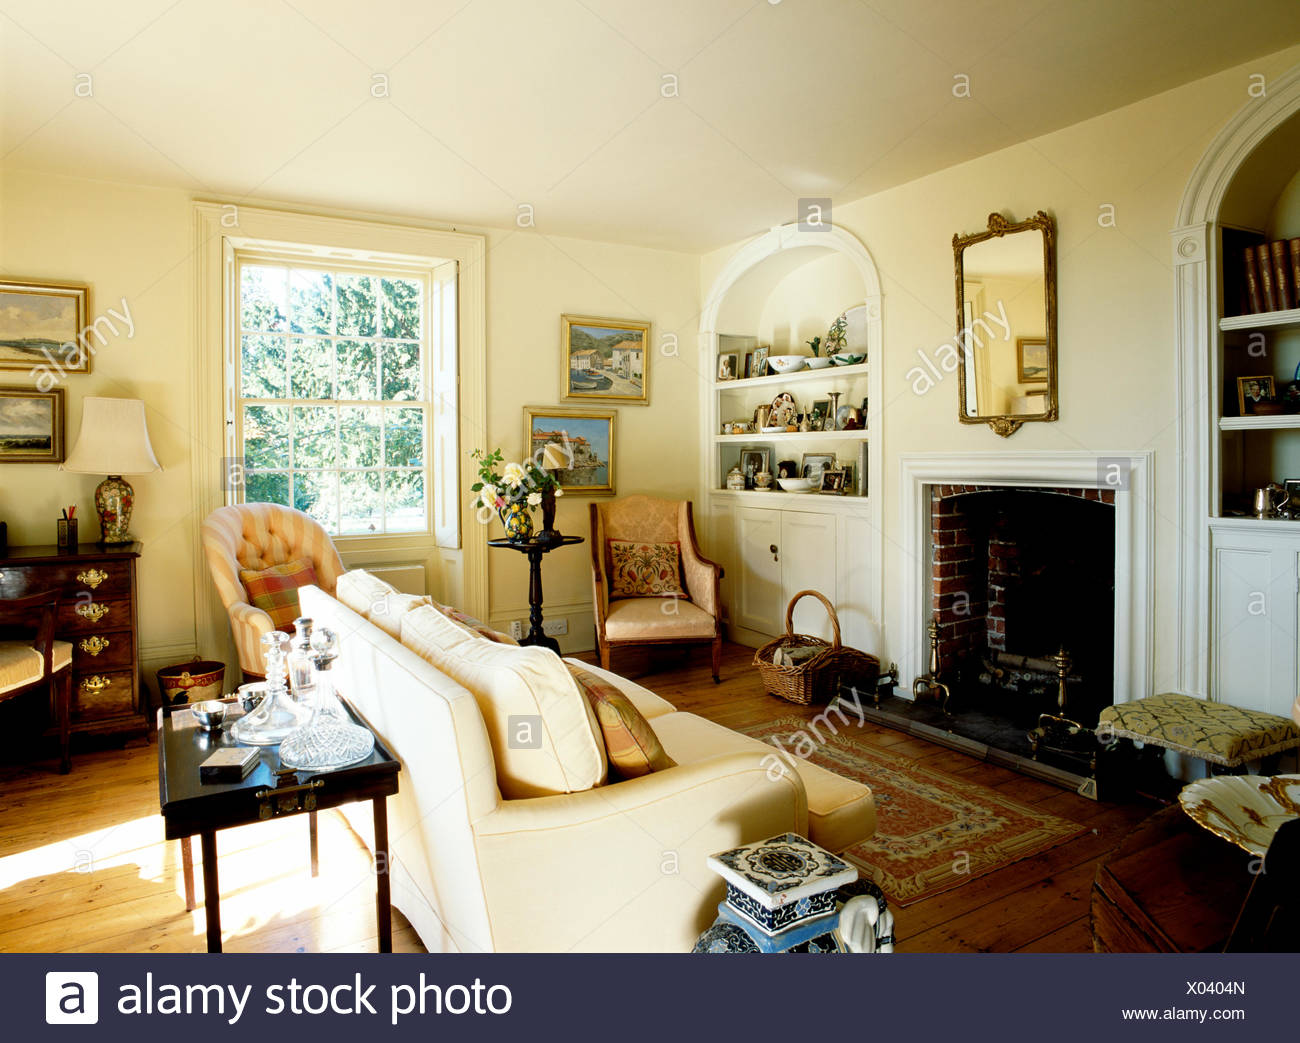 Alcove Shelving On Either Side Of Fireplace In Cream Country Living Room  With Cream Sofa And Antique Chairs